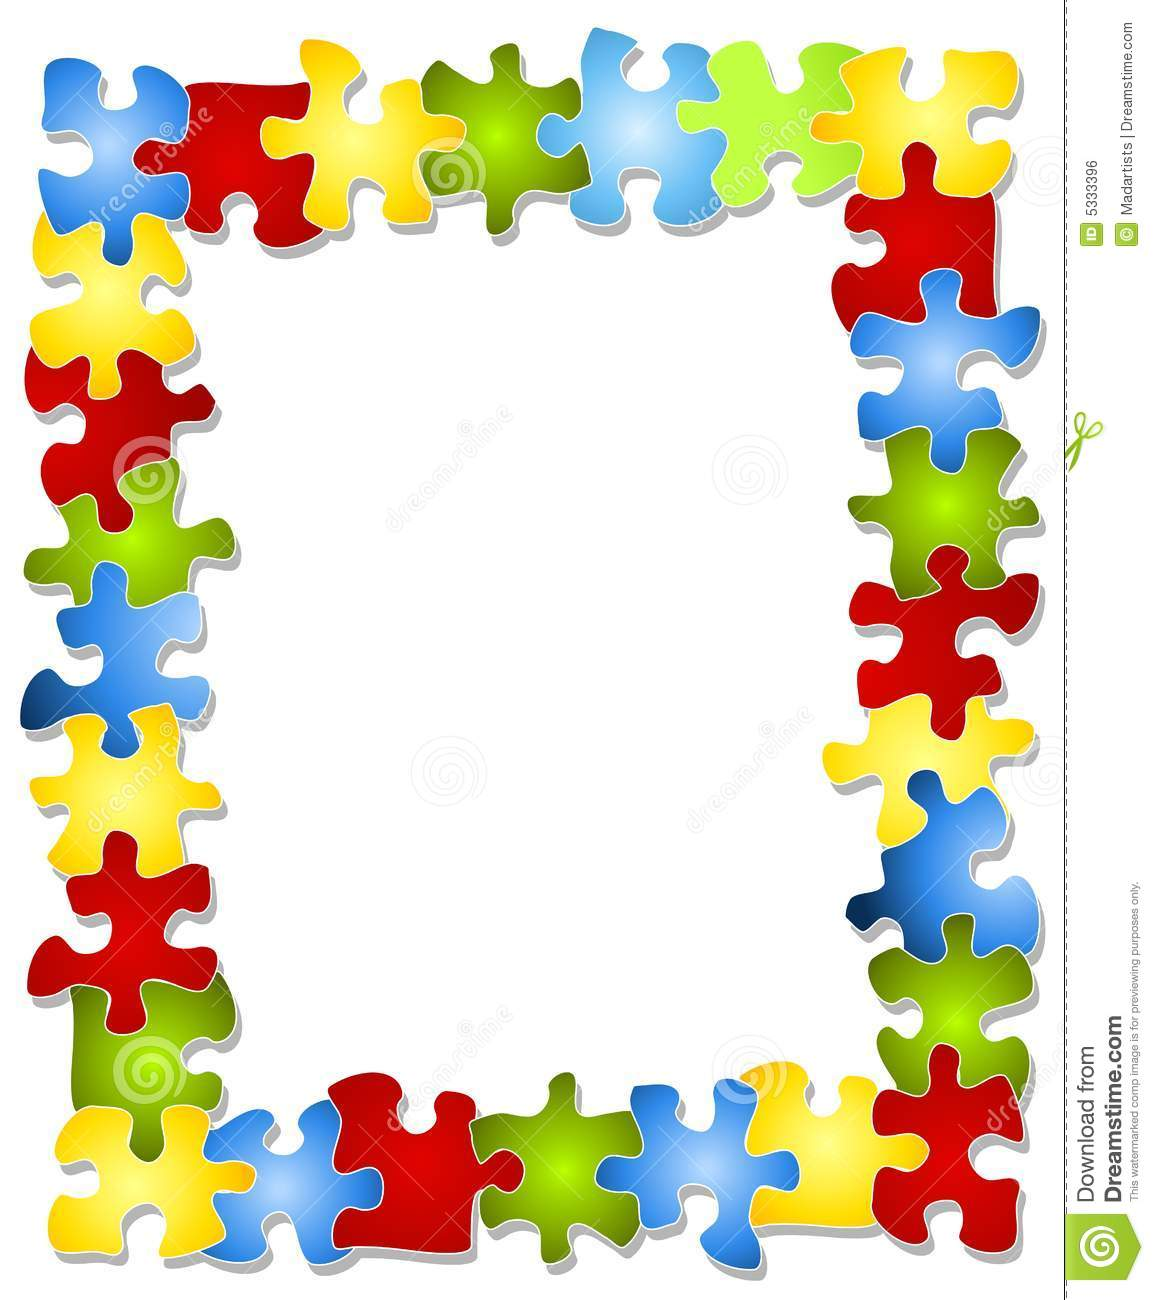 Colorful puzzle pieces frame stock illustration for Cornice puzzle